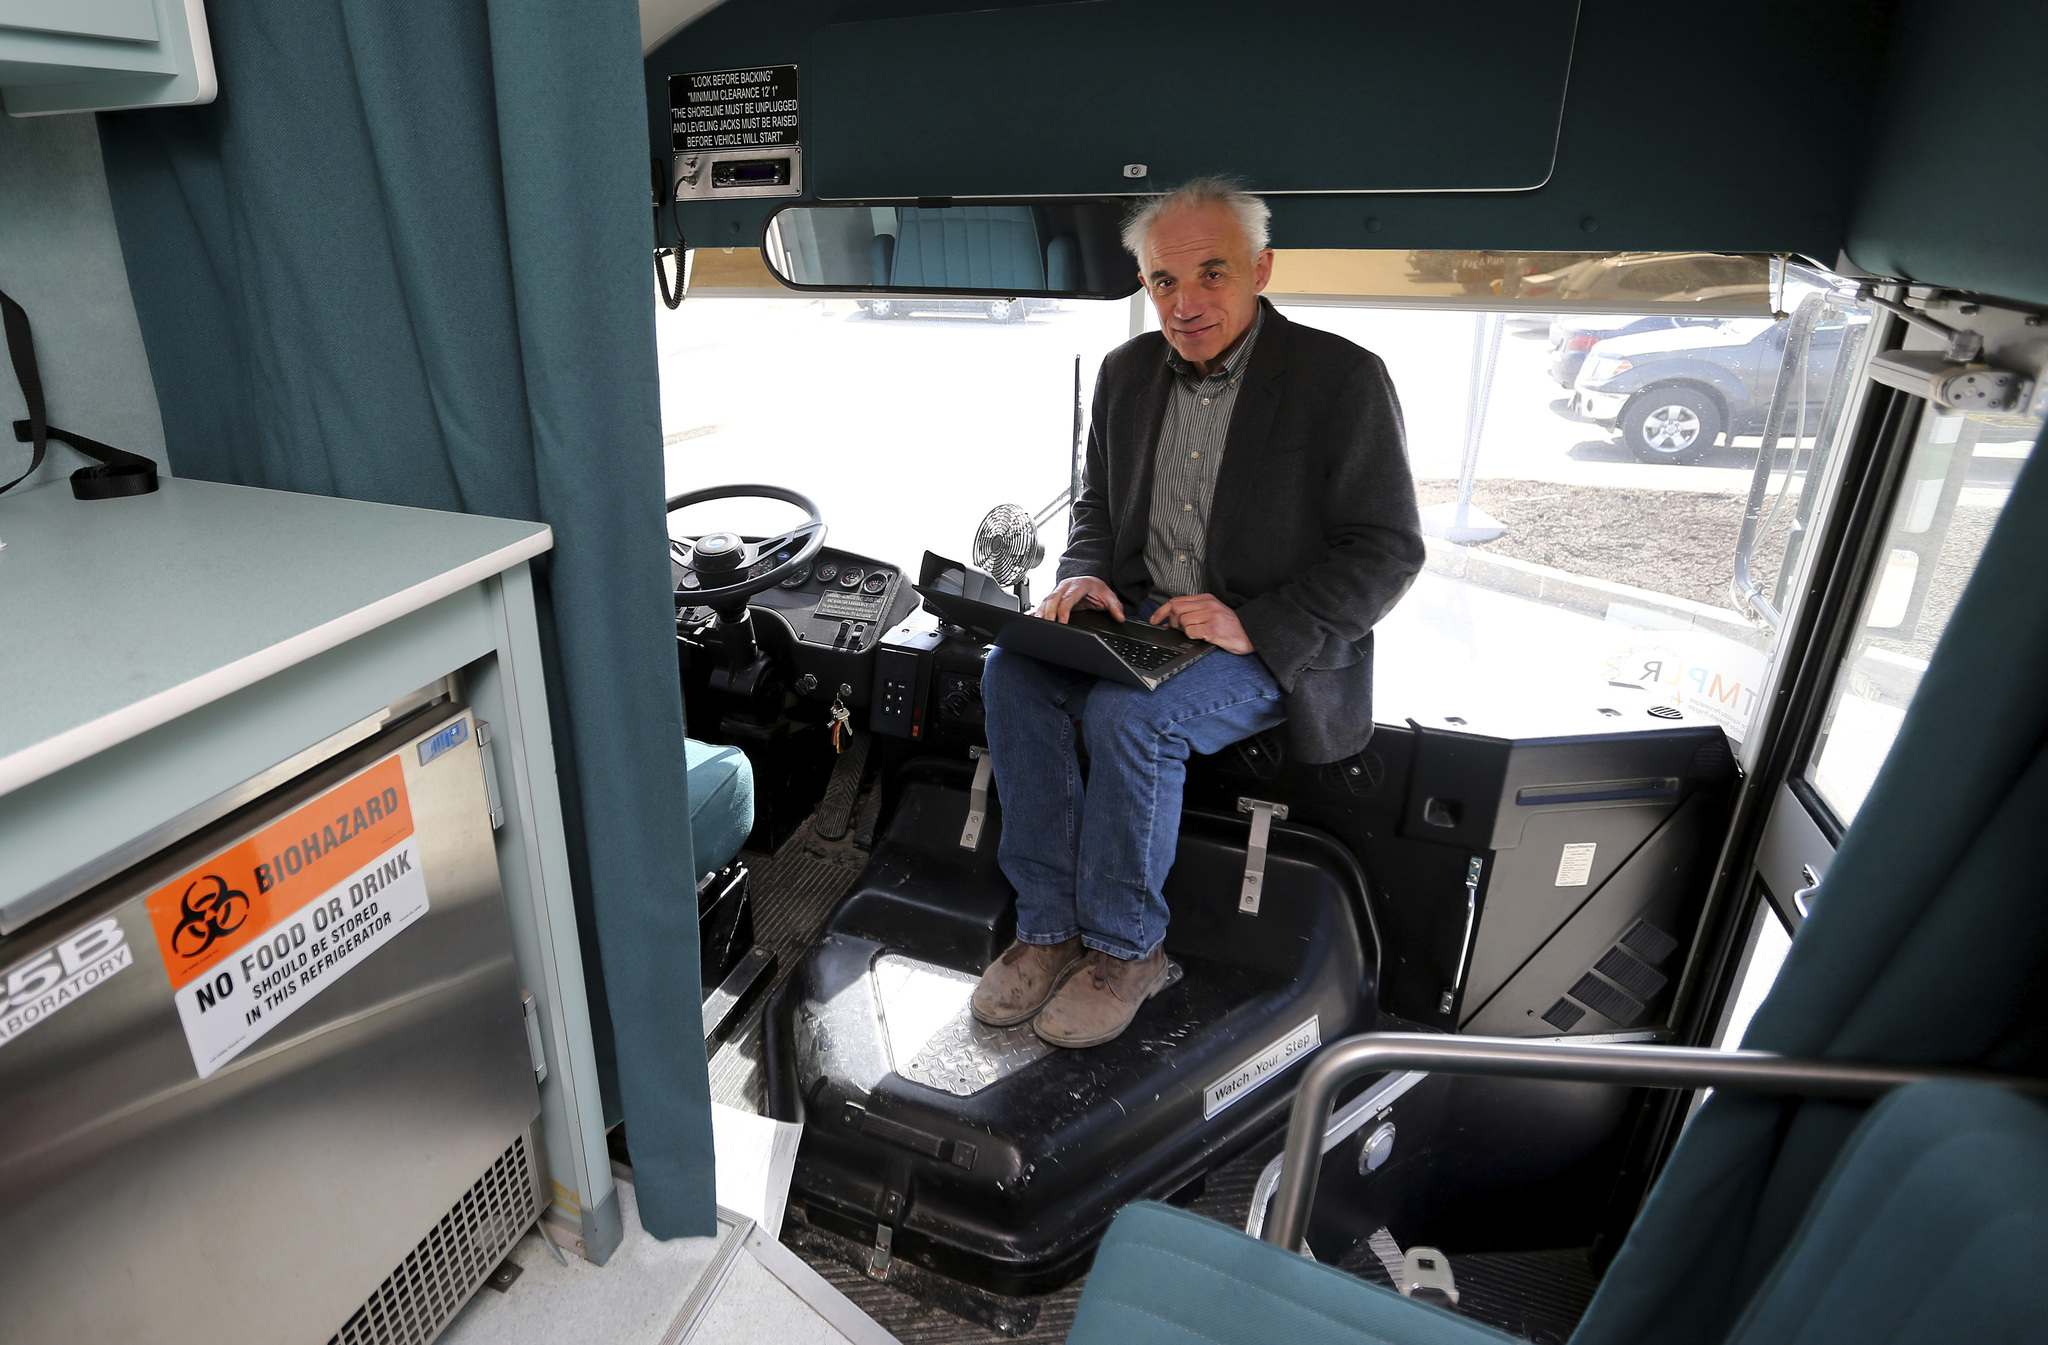 TREVOR HAGAN / WINNIPEG FREE PRESS</p><p>Peter Jones inside the Mobile Nutrition Testing Laboratory.</p>